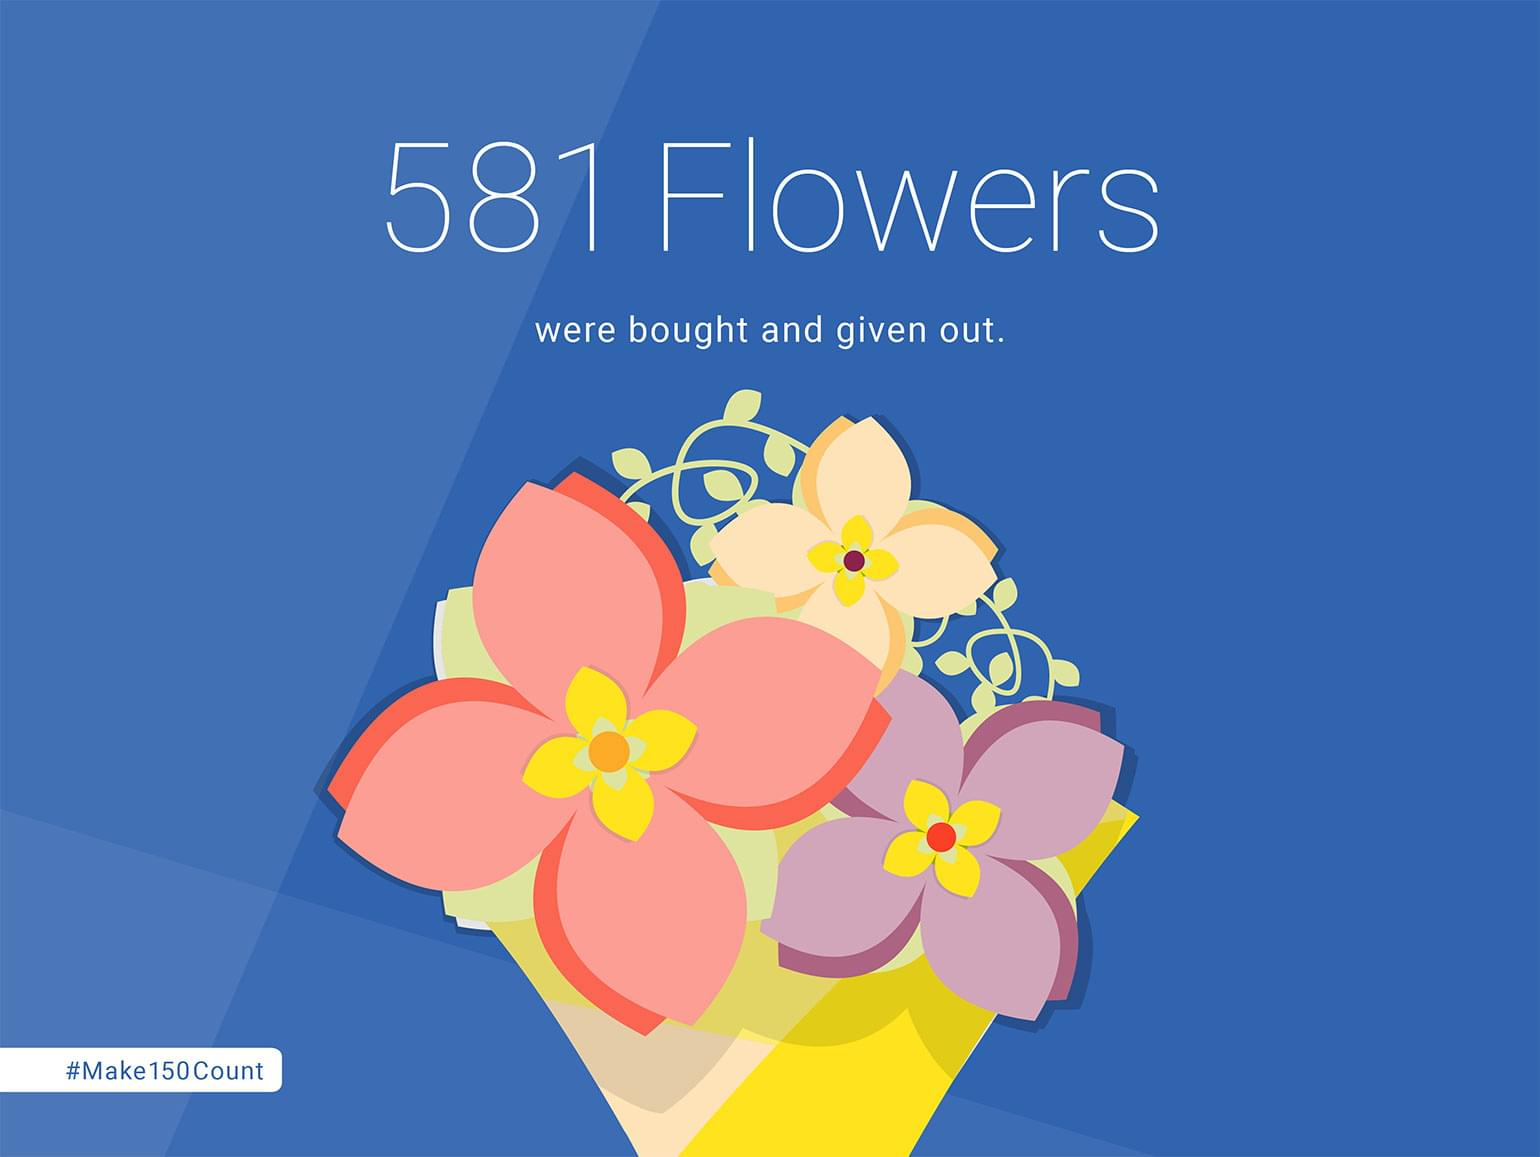 581 Flowers bought and given out.